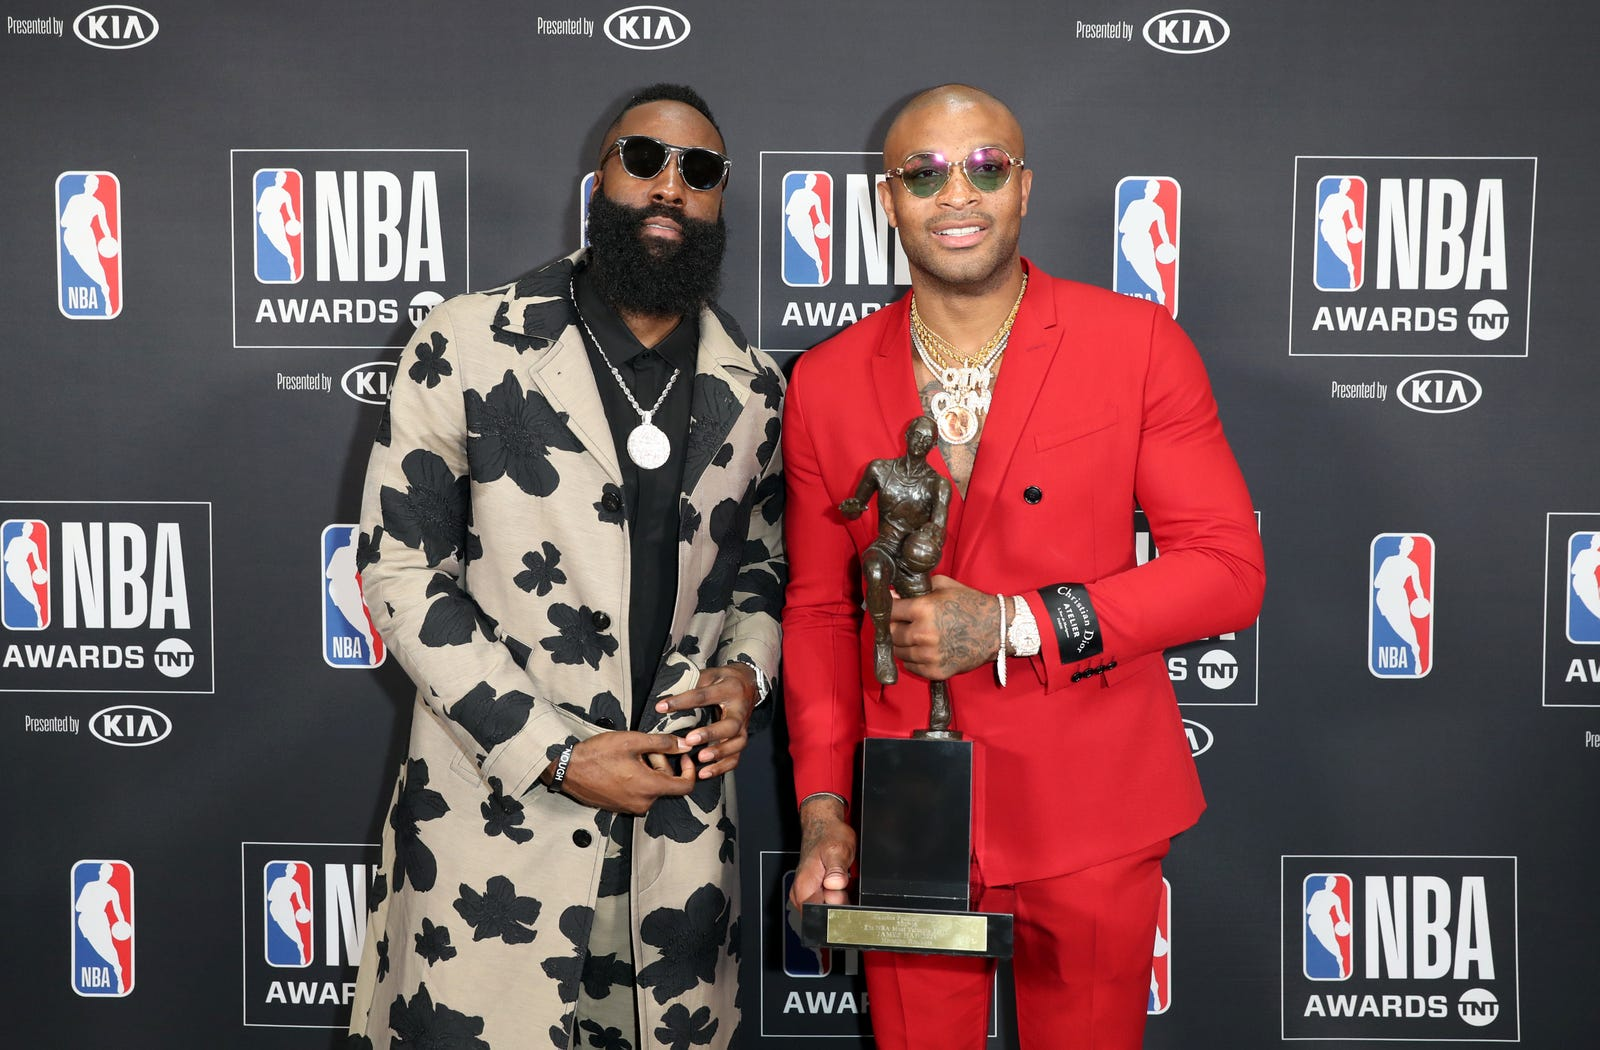 MVP winner James Harden poses with P.J. Tucker at the 2018 NBA Awards at Barkar Hangar on June 25, 2018 in Santa Monica, California.